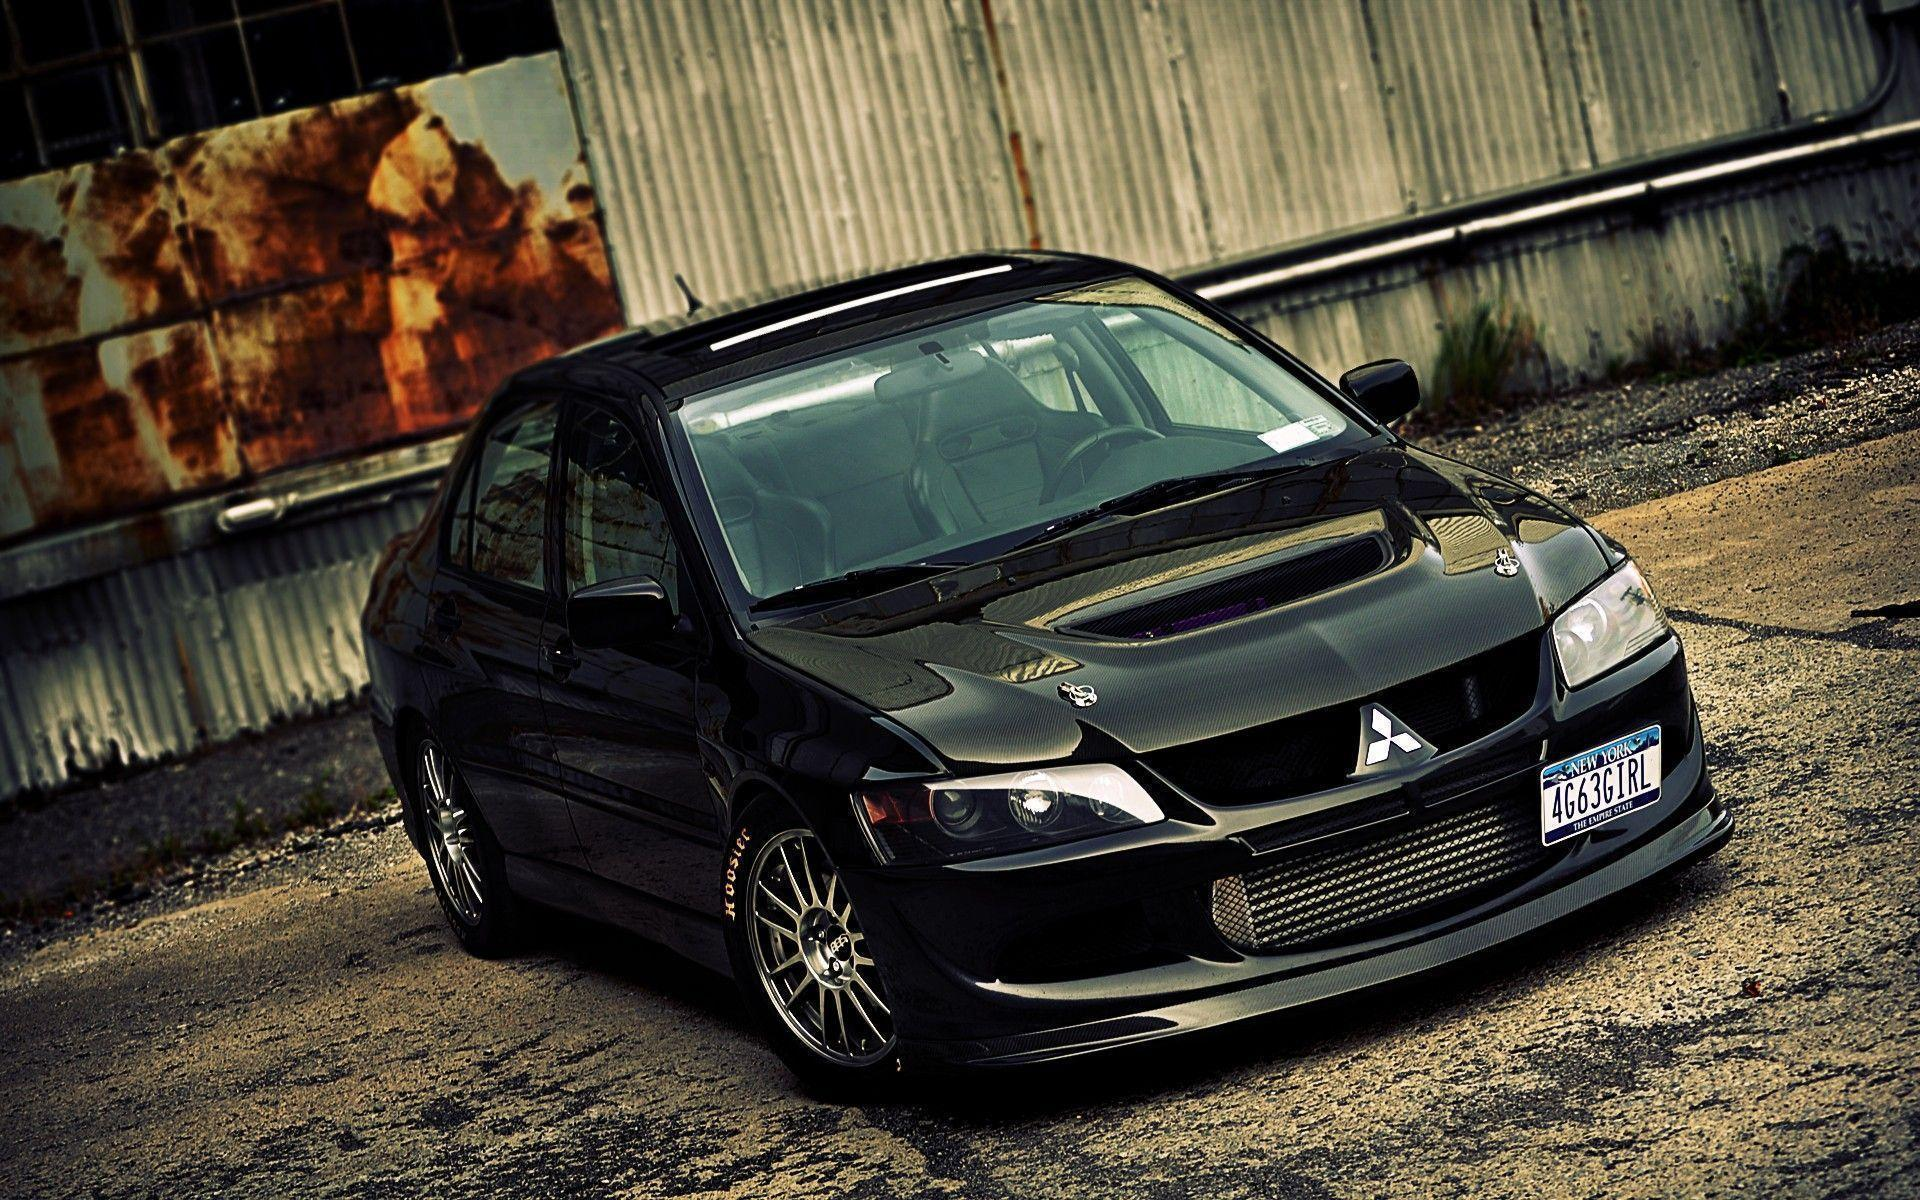 mitsubishi evo 8 wallpapers wallpaper cave. Black Bedroom Furniture Sets. Home Design Ideas